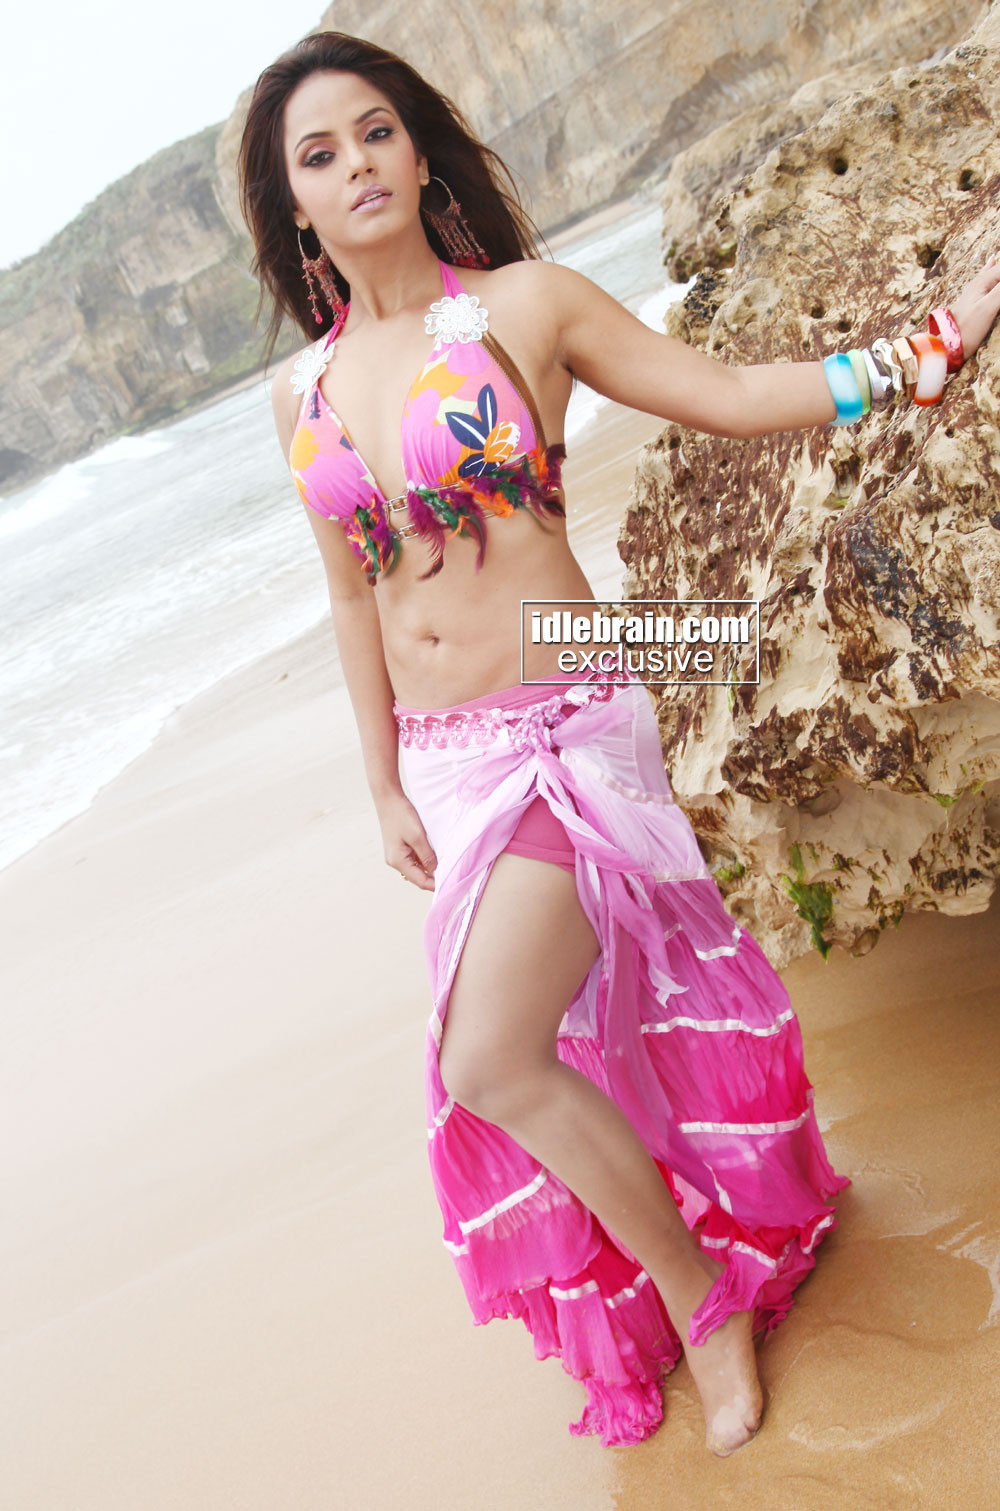 http://www.idlebrain.com/movie/photogallery/neetuchandra6/images/neetchandra10.jpg